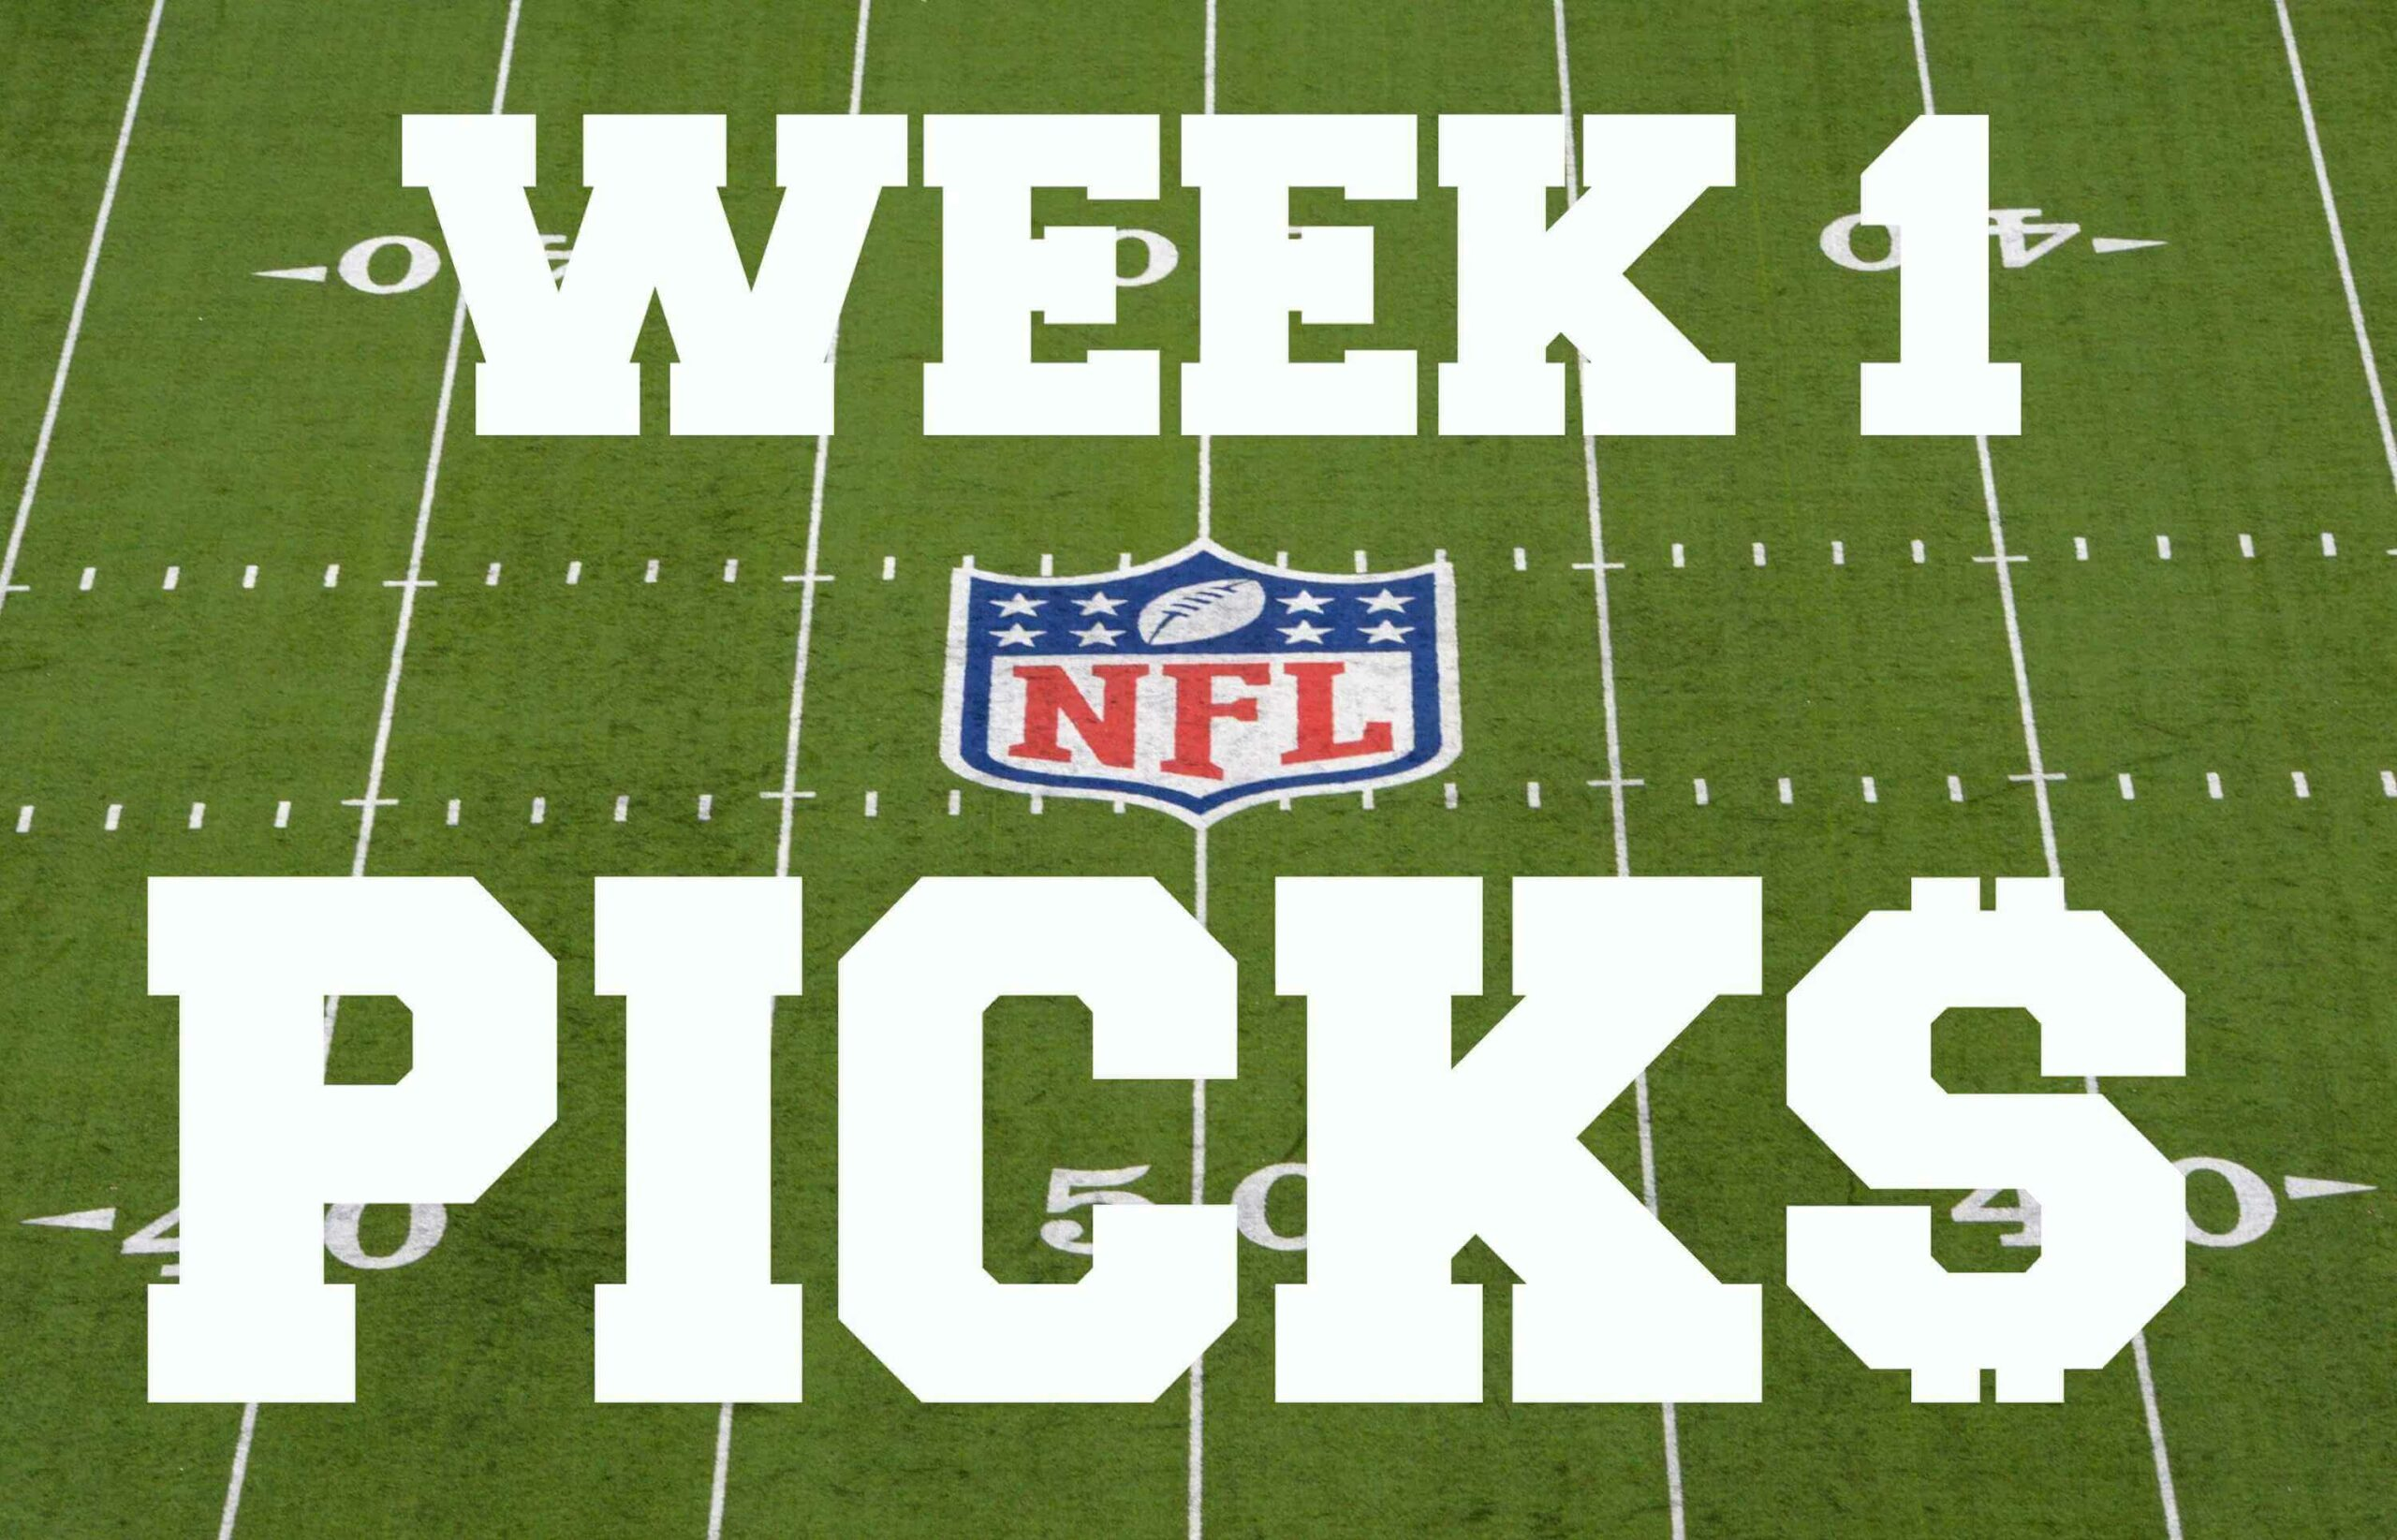 (*On mobile, our College Football Week 3 picks are best viewed in landscape mode.)